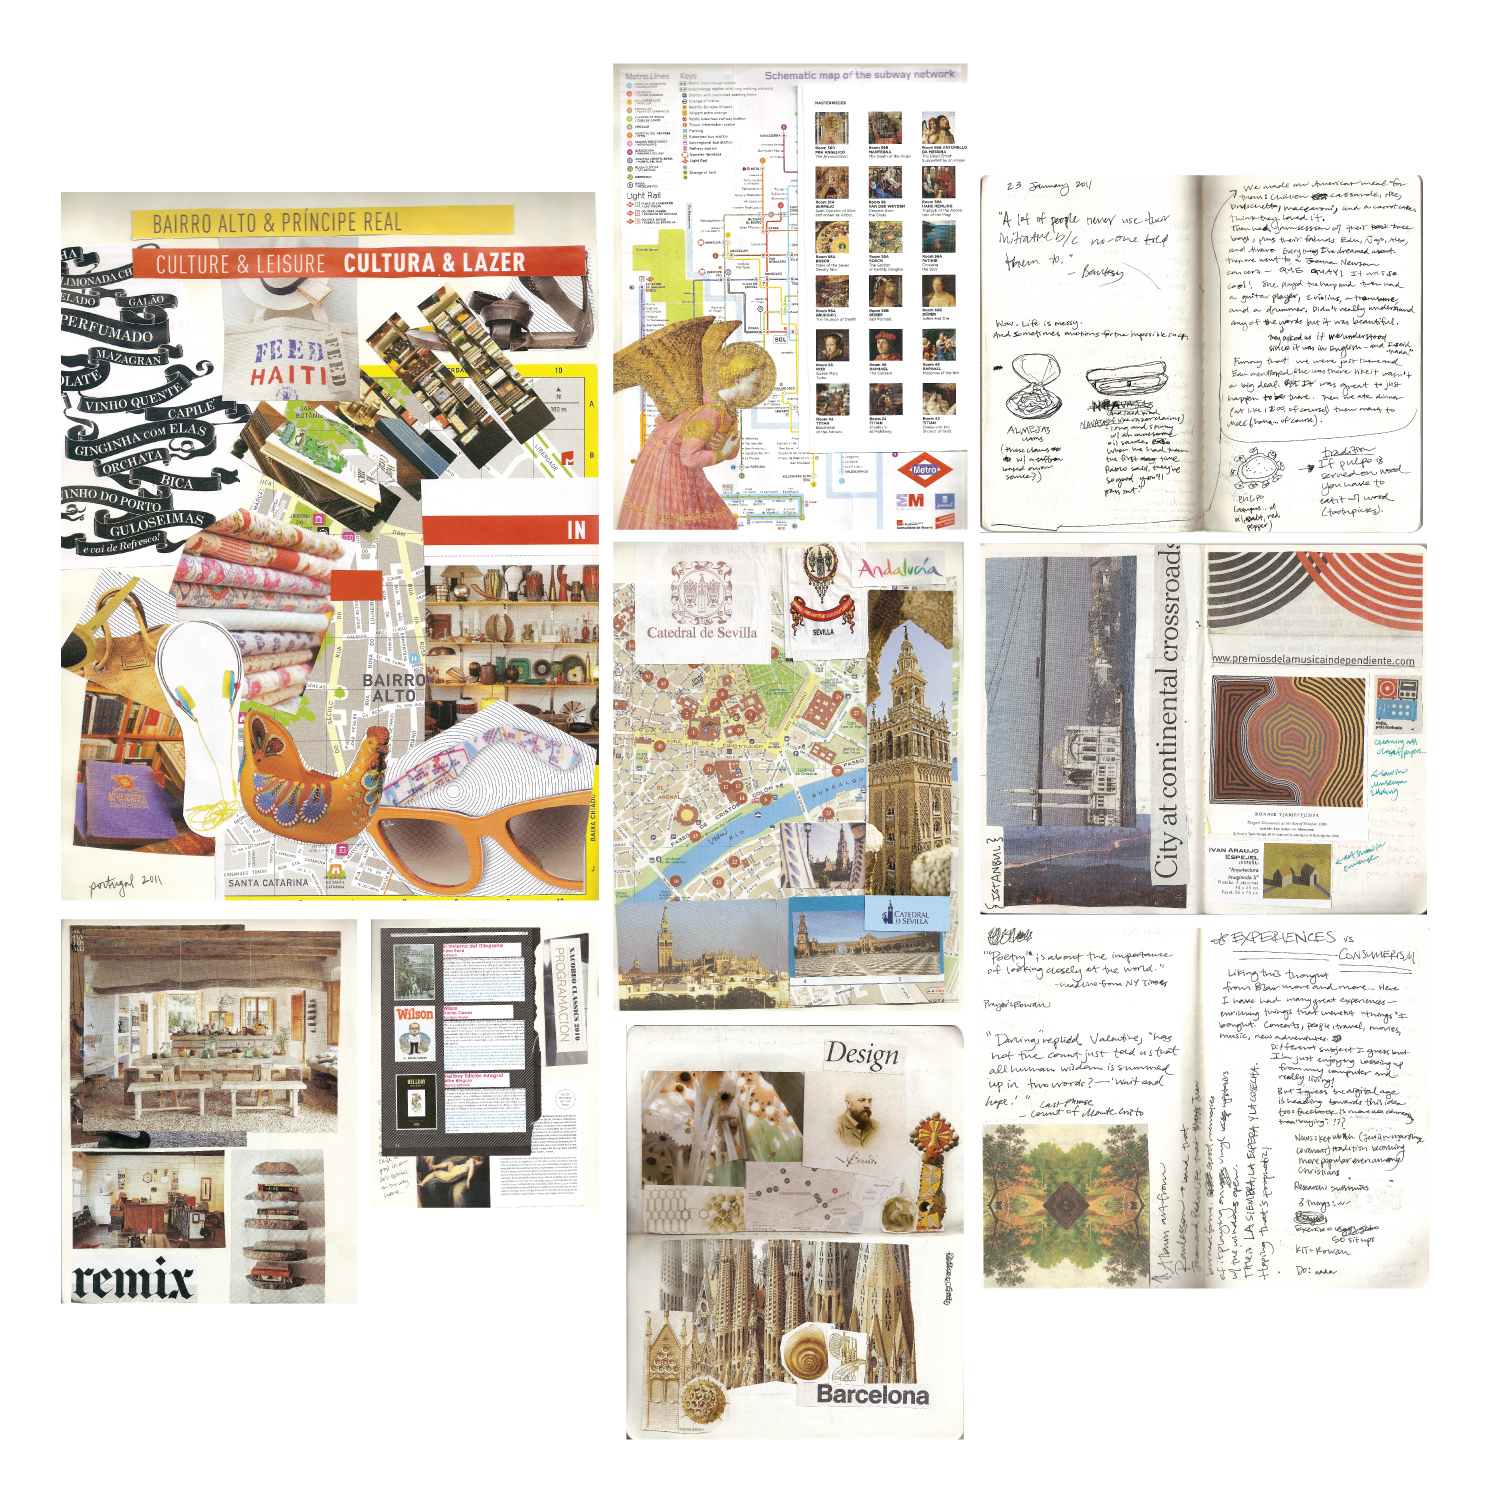 Sketchbook-pages-collage-new-site.jpg